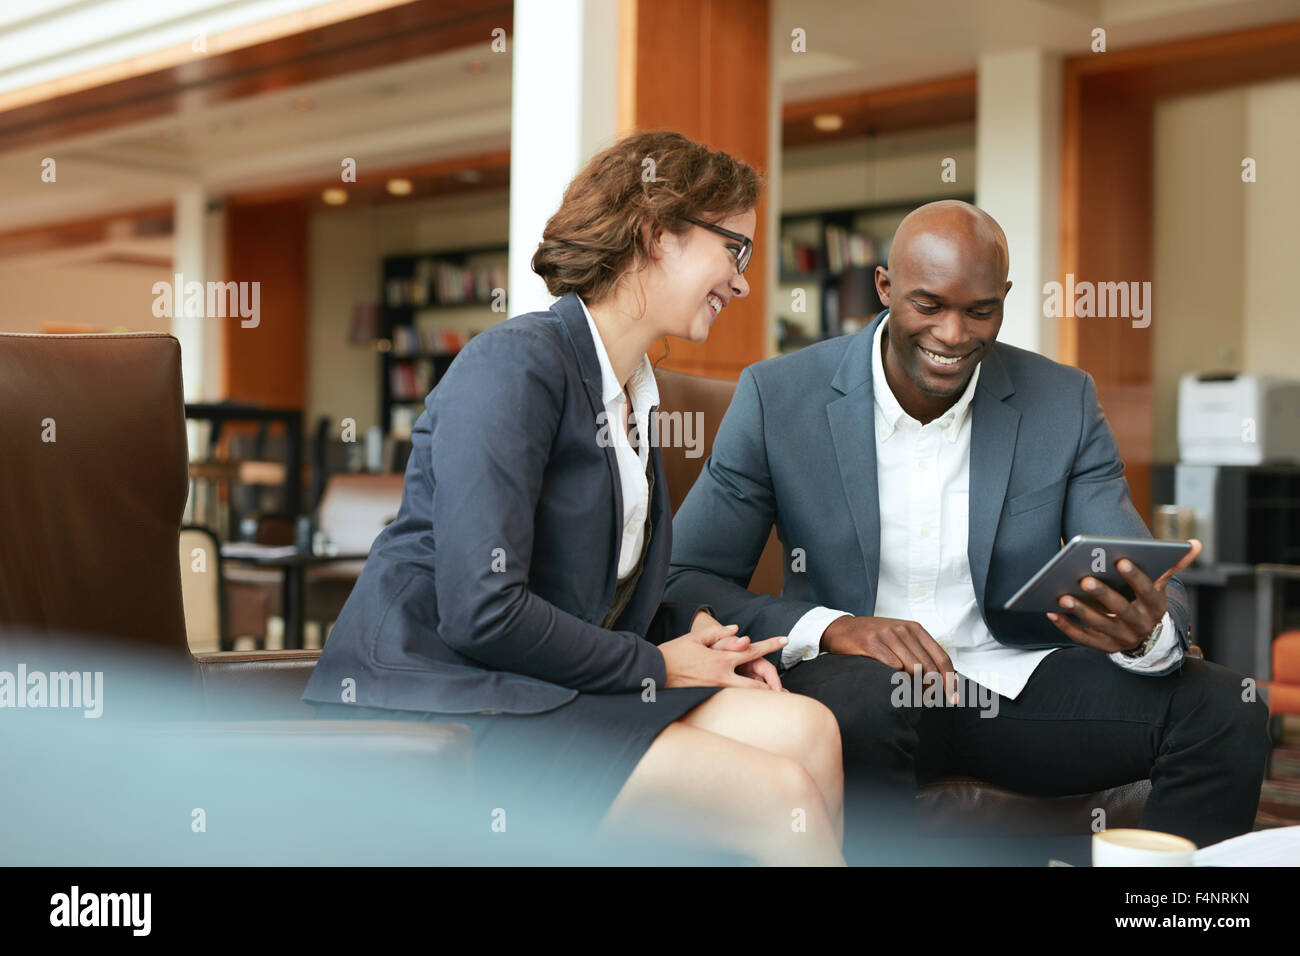 Shot of two people looking at something on a touchscreen computer. Smiling business people using digital tablet - Stock Image